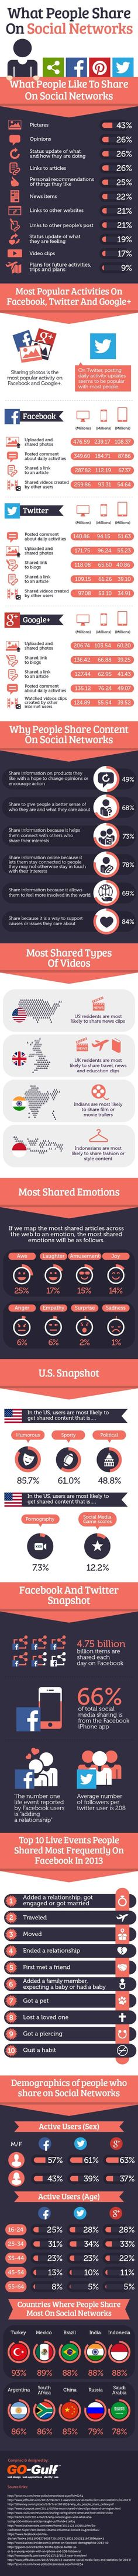 What People Share on Social Networks {Infographic} - Best Infographics